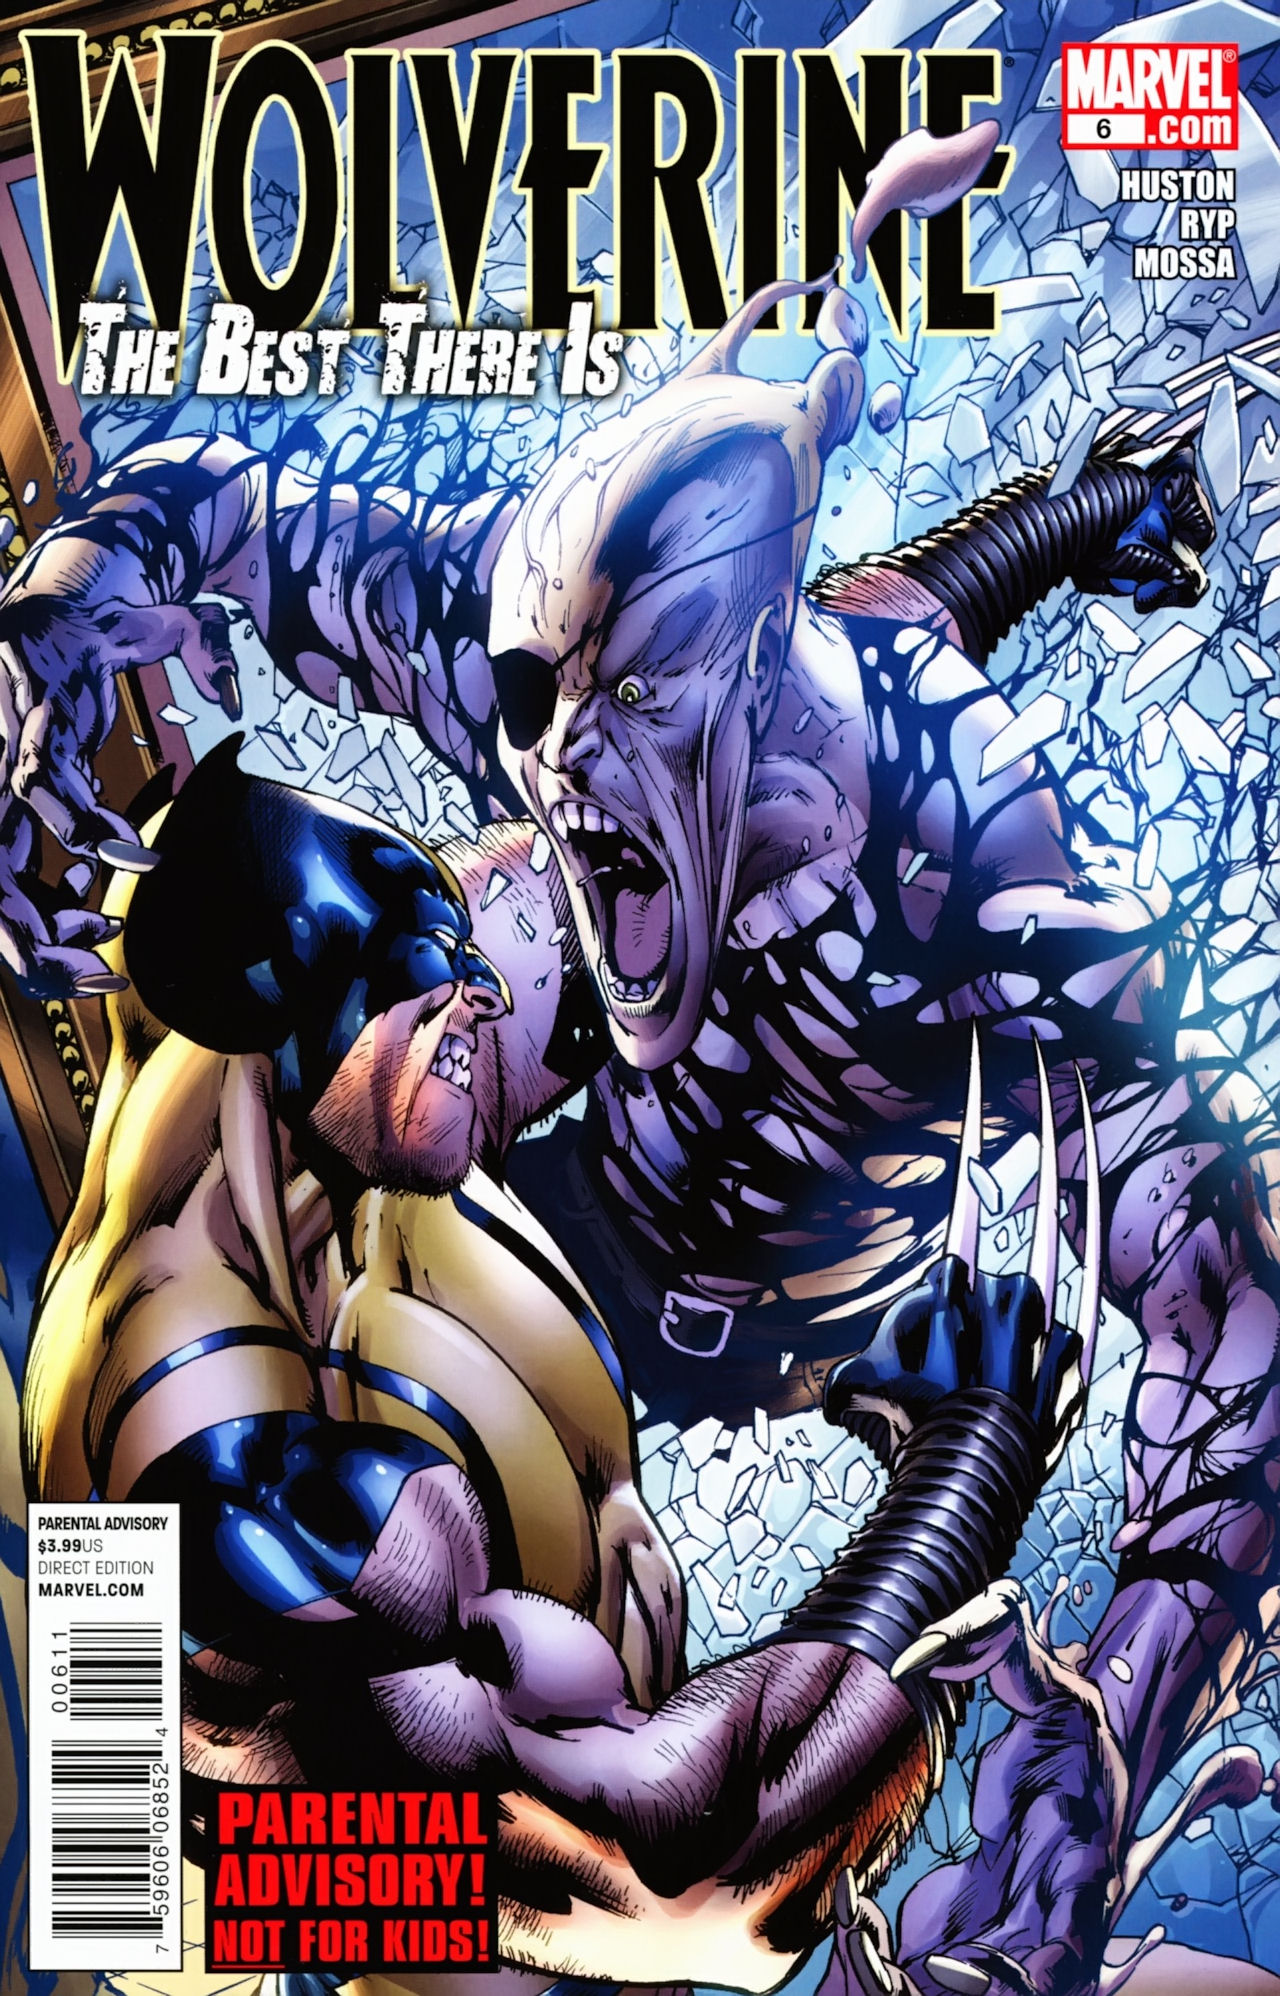 Read online Wolverine: The Best There Is comic -  Issue #6 - 1